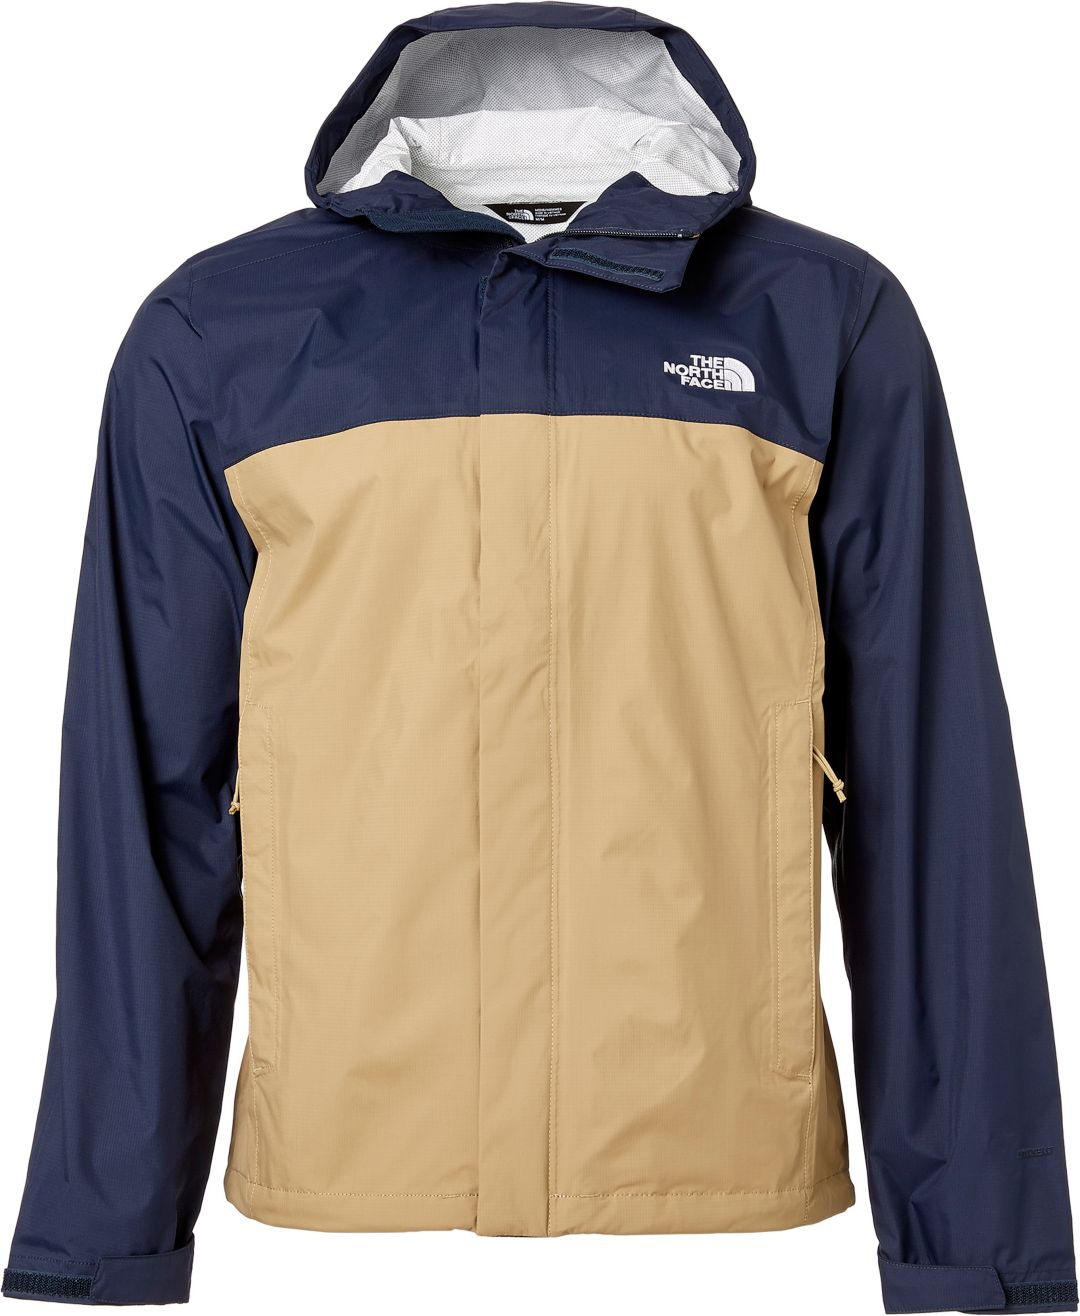 9065dc543 The North Face Men's Venture 2 Jacket